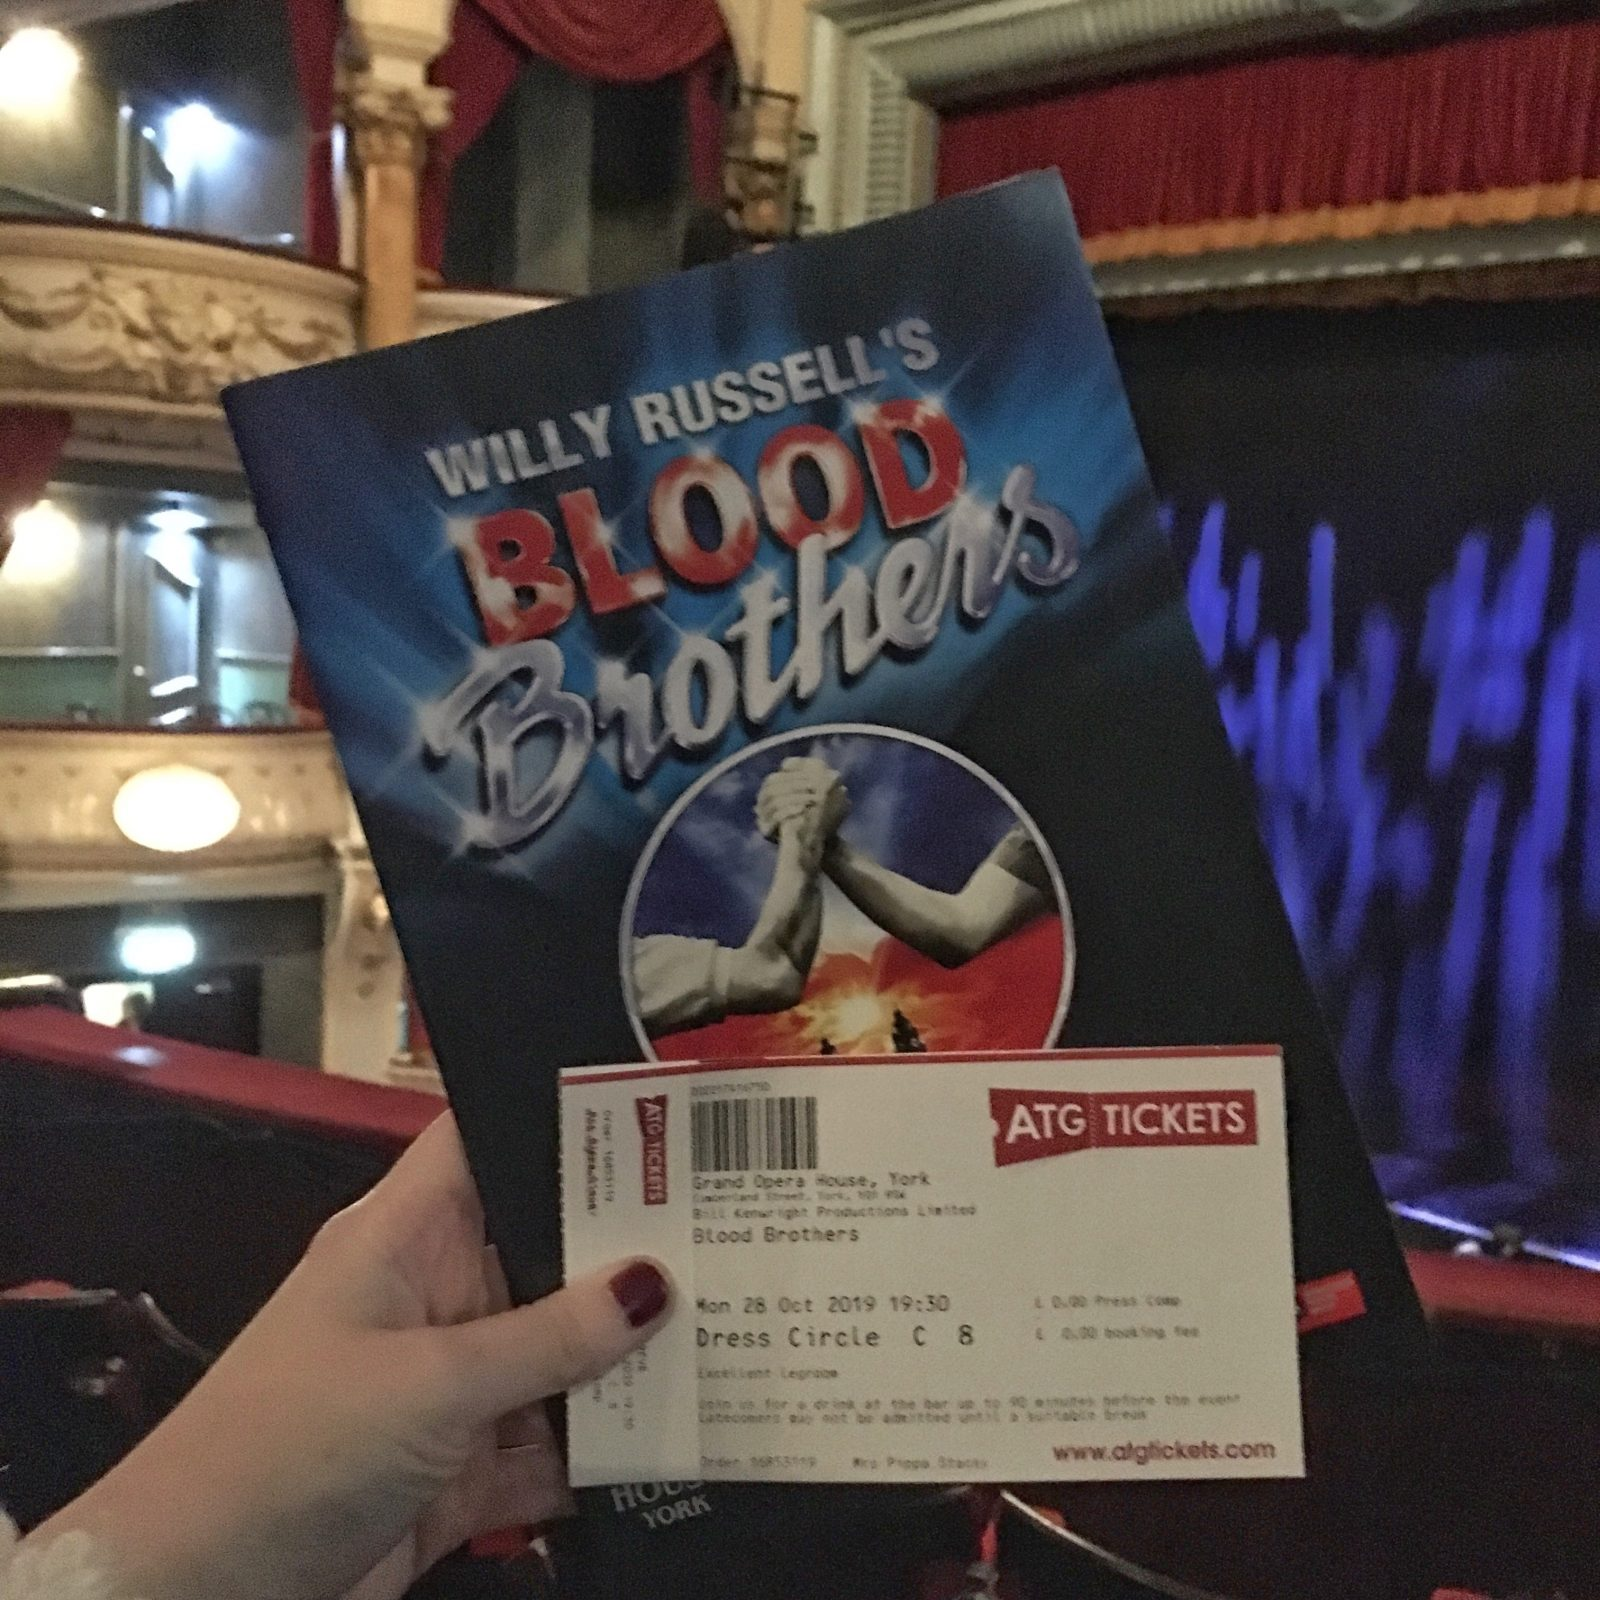 pippa's hand holding up blood brothers programme and ticket, with theatre in background